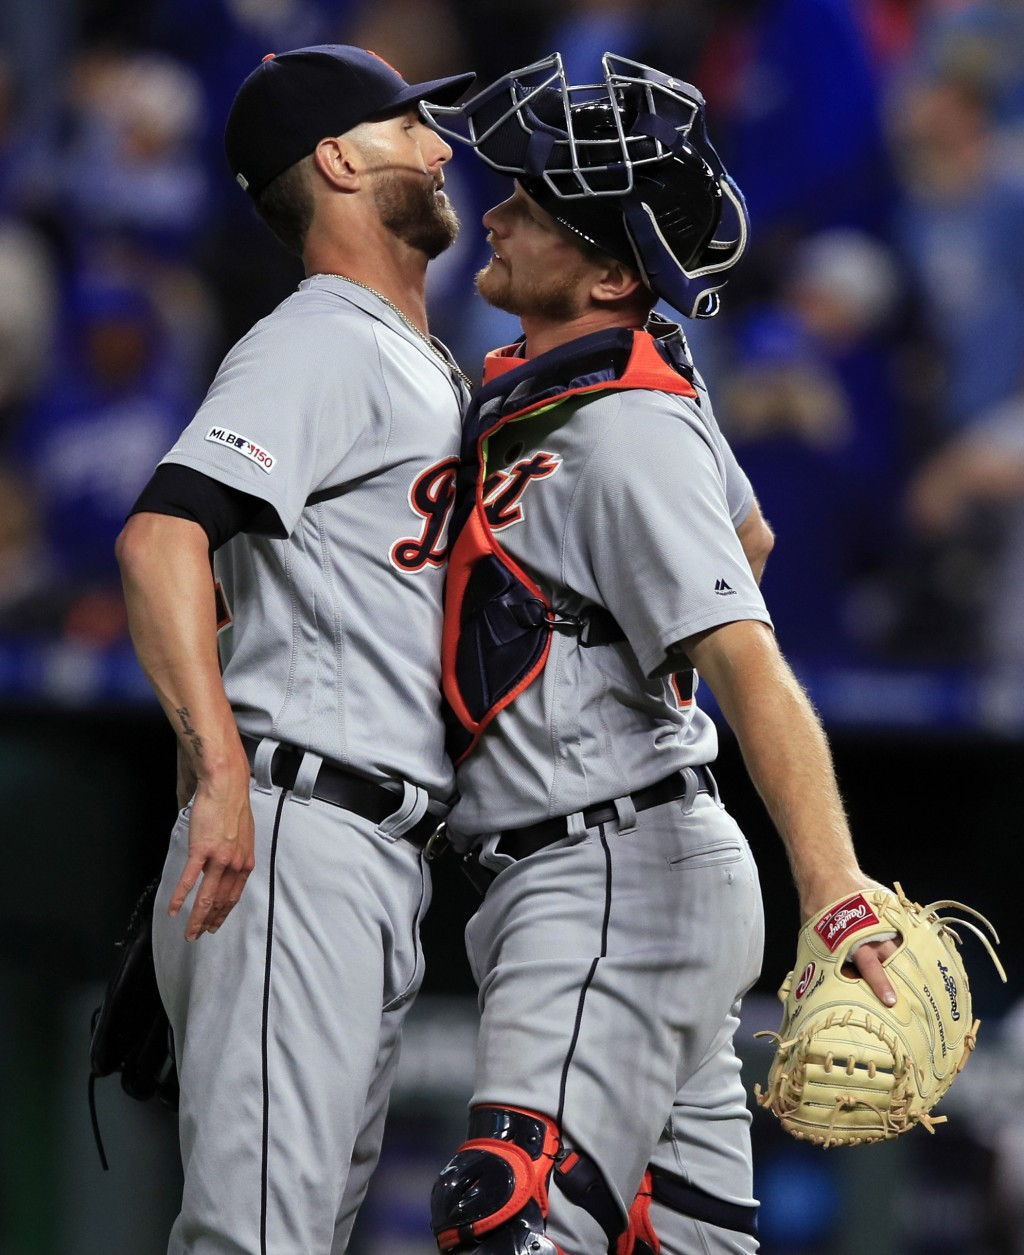 Detroit Tigers relief pitcher Shane Greene, left, and catcher John Hicks, right, celebrate following the team's baseball game against the Kansas City